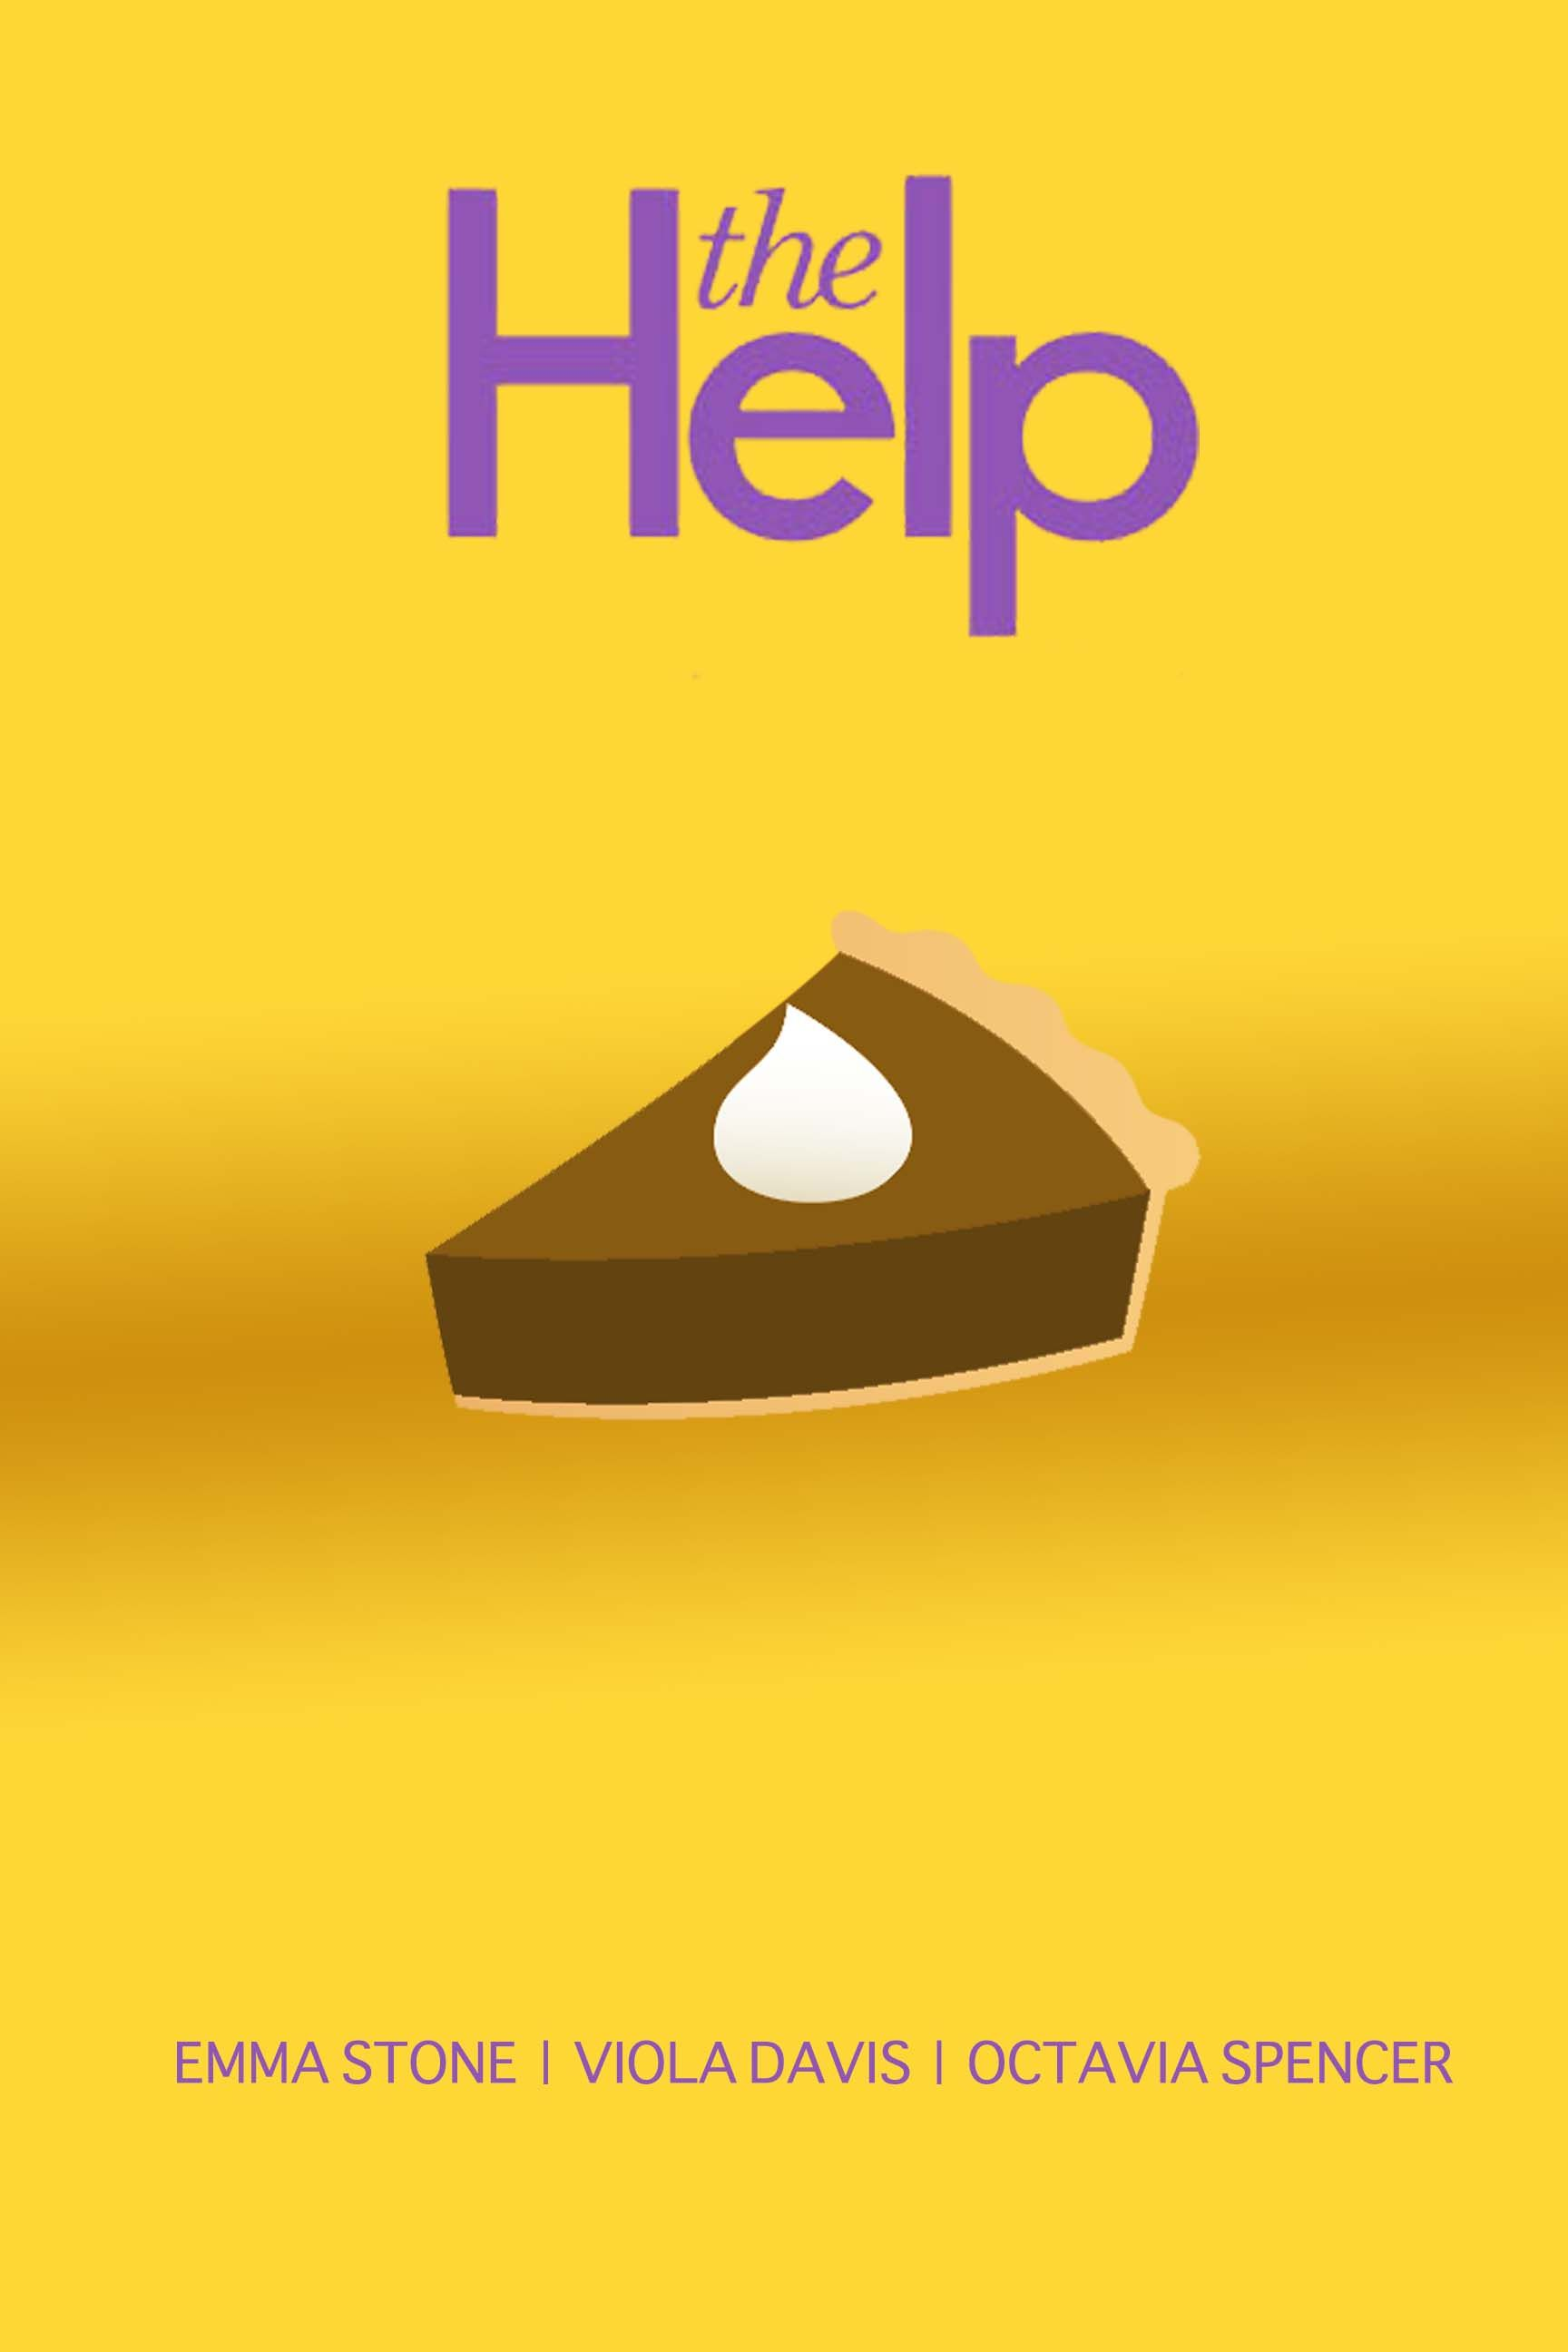 My Minimalist Poster For The Help The Pie Had To Be The Best Moment In The Movie Movie Posters Minimalist Minimalist Poster Movie Posters